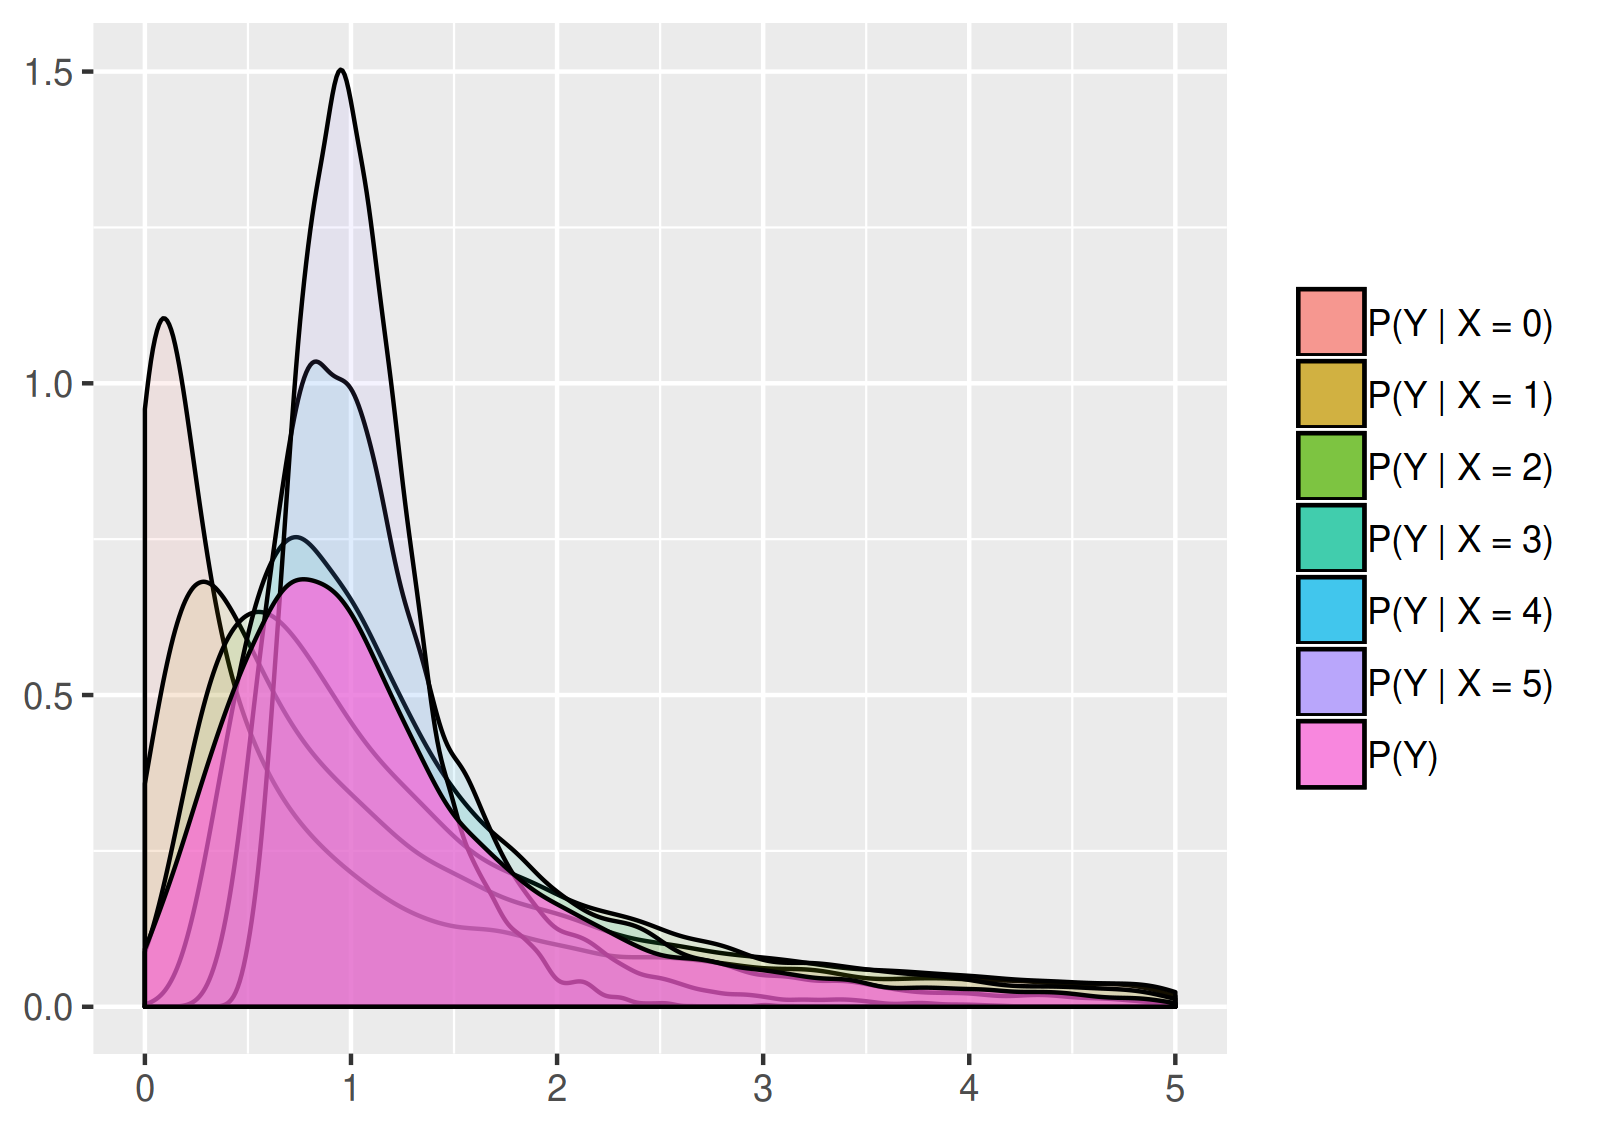 Probability density function of Y